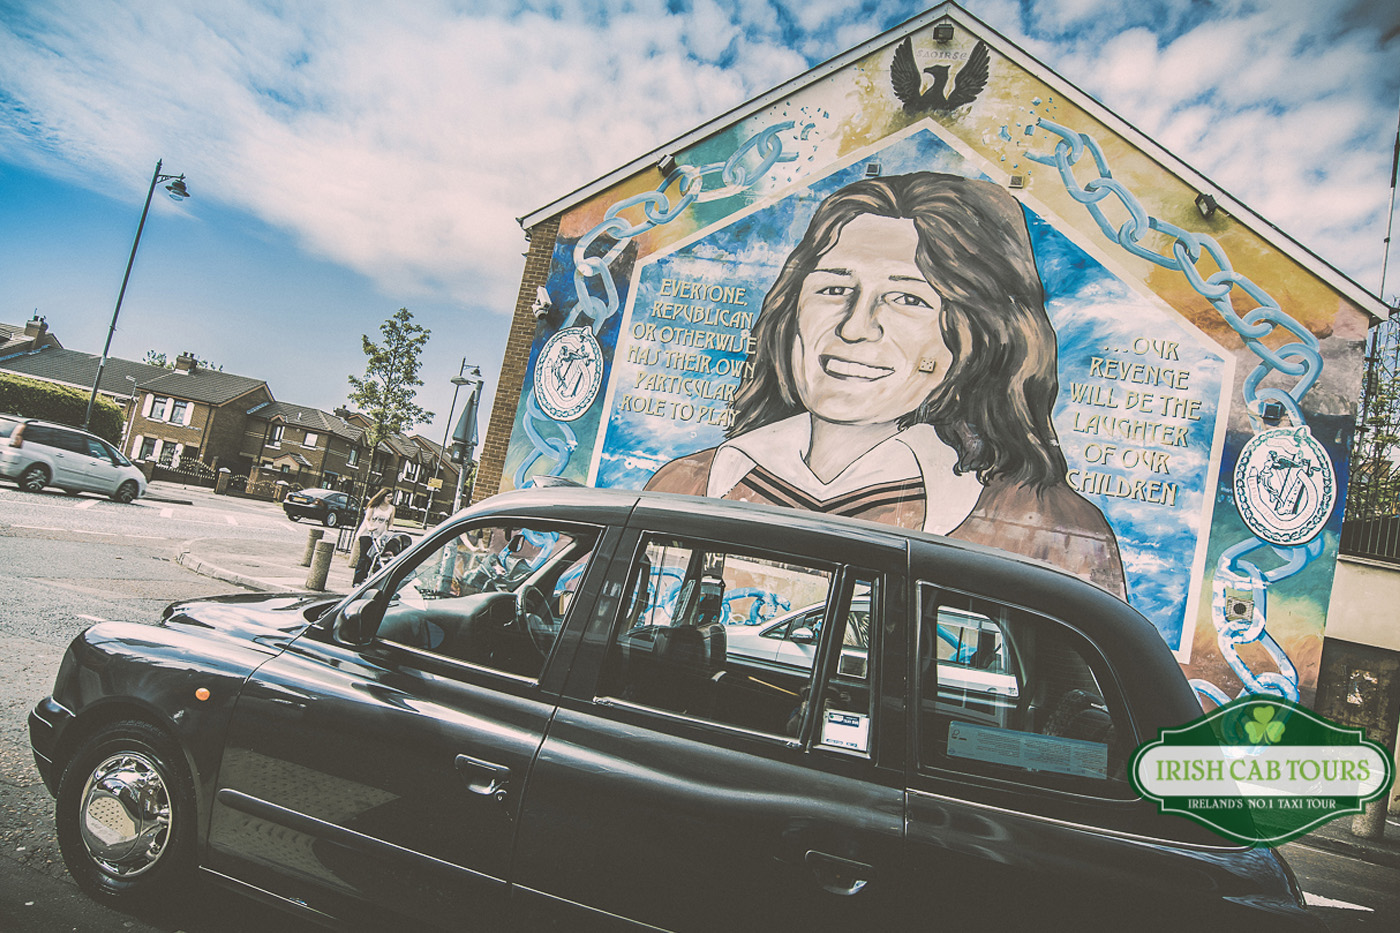 Black cab mural tour irish cab tours taxi tours for Belfast mural tours